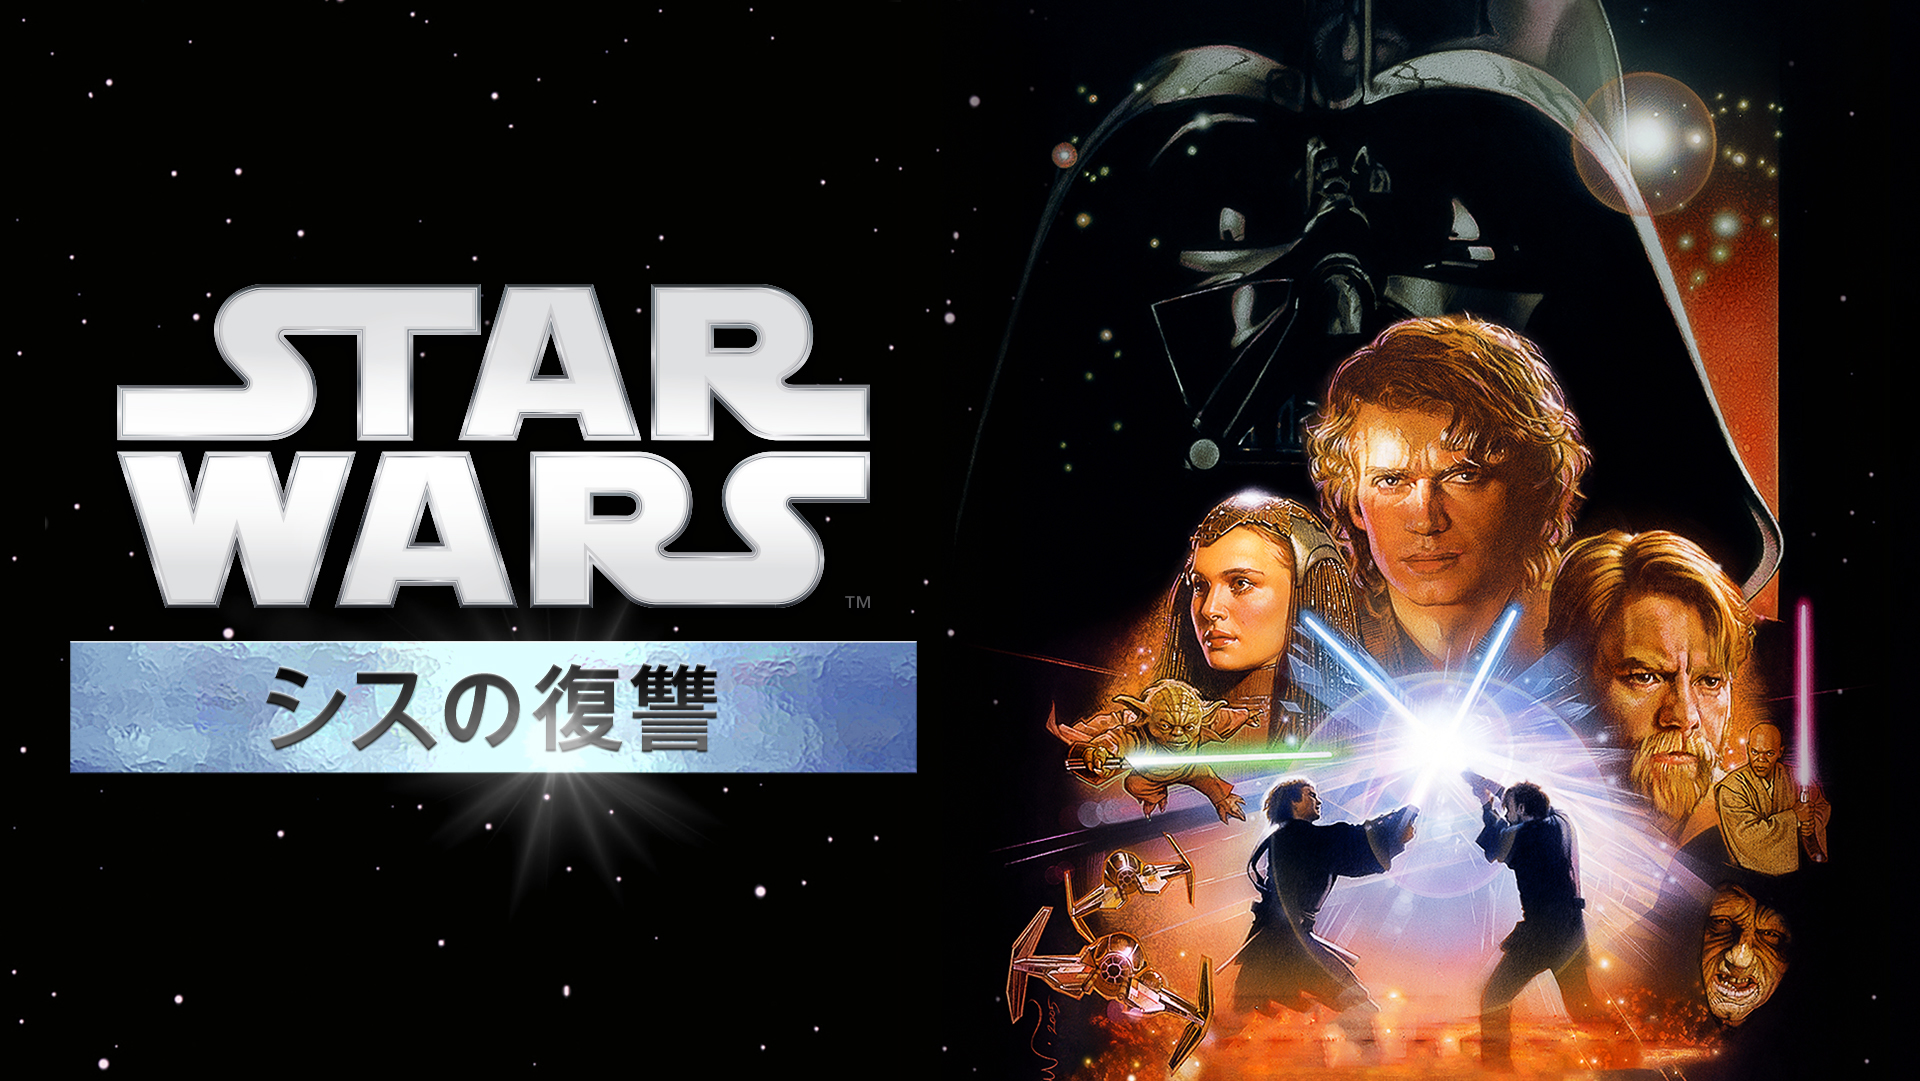 Star Wars:Attack of the Clones (C) & TM 2015 Lucasfilm Ltd. All Rights Reserved.